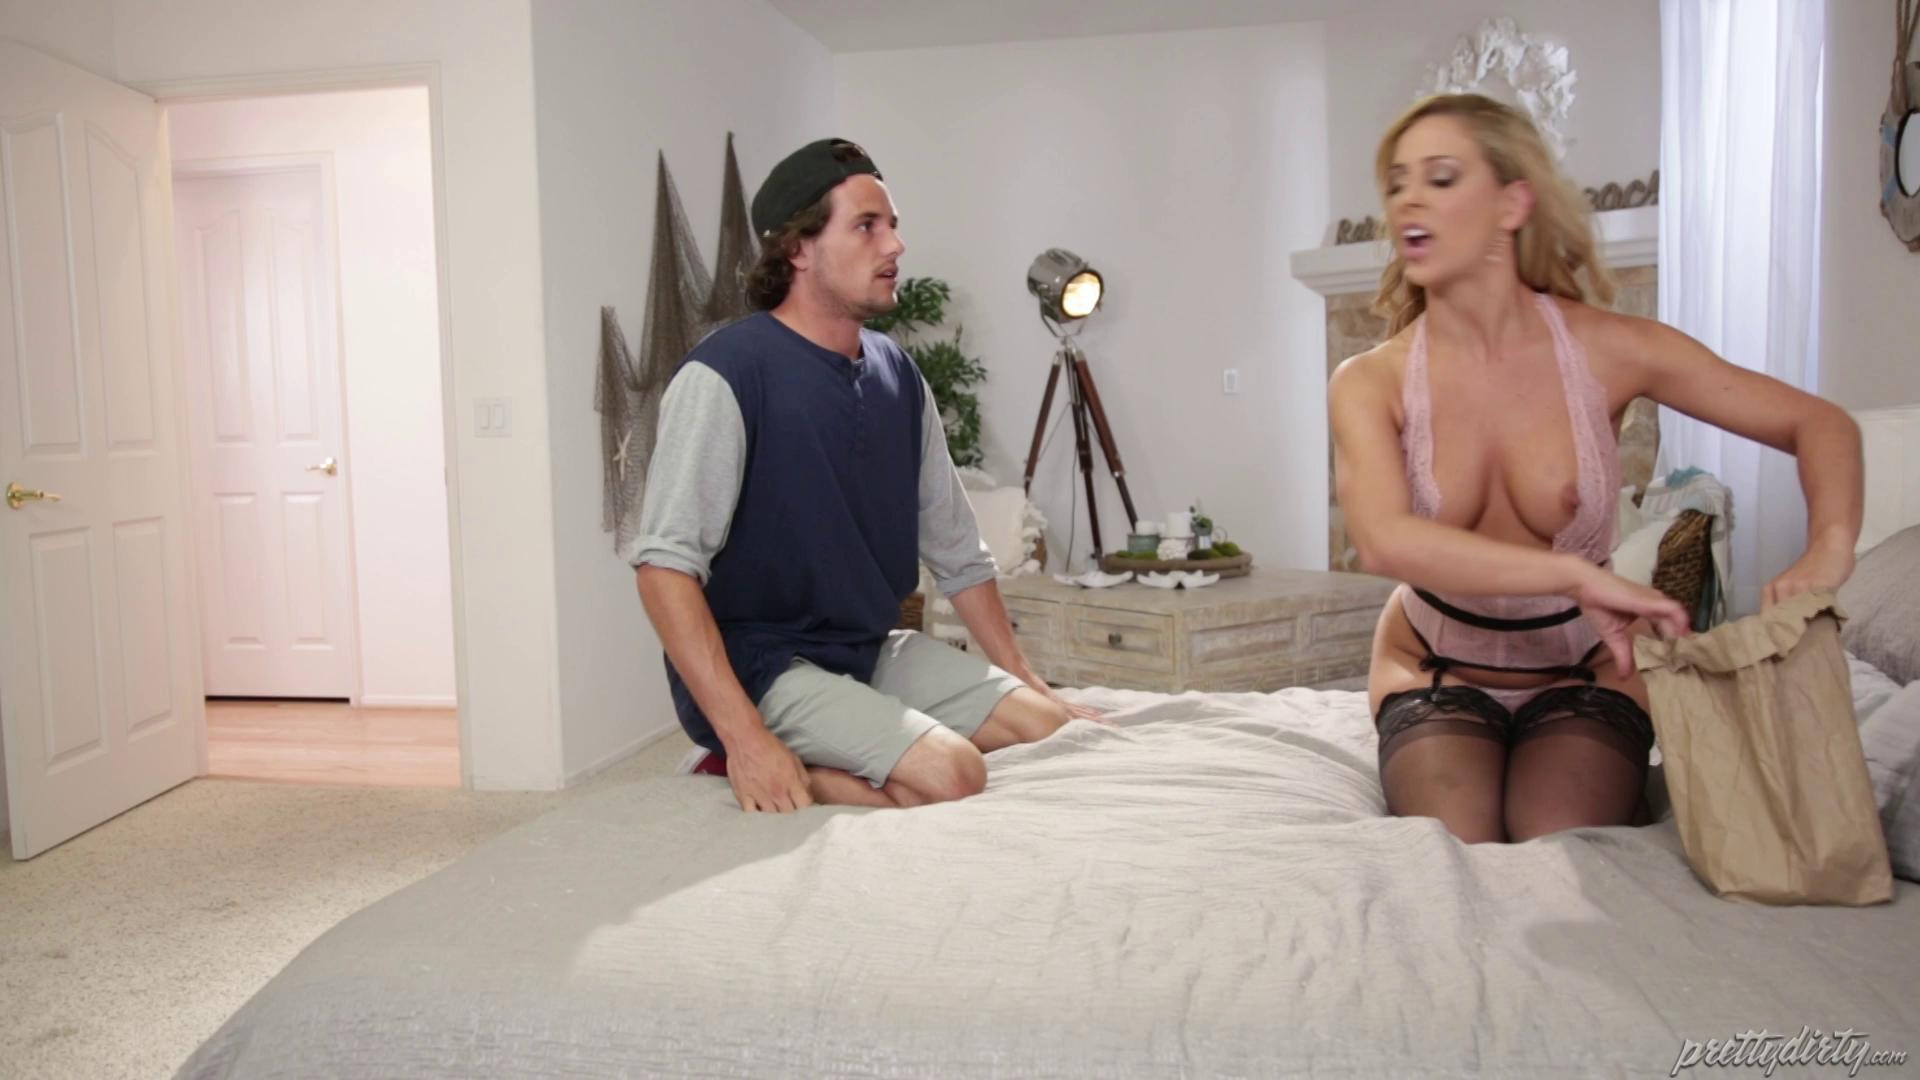 PrettyDirty – Cherie Deville Five Star Rating